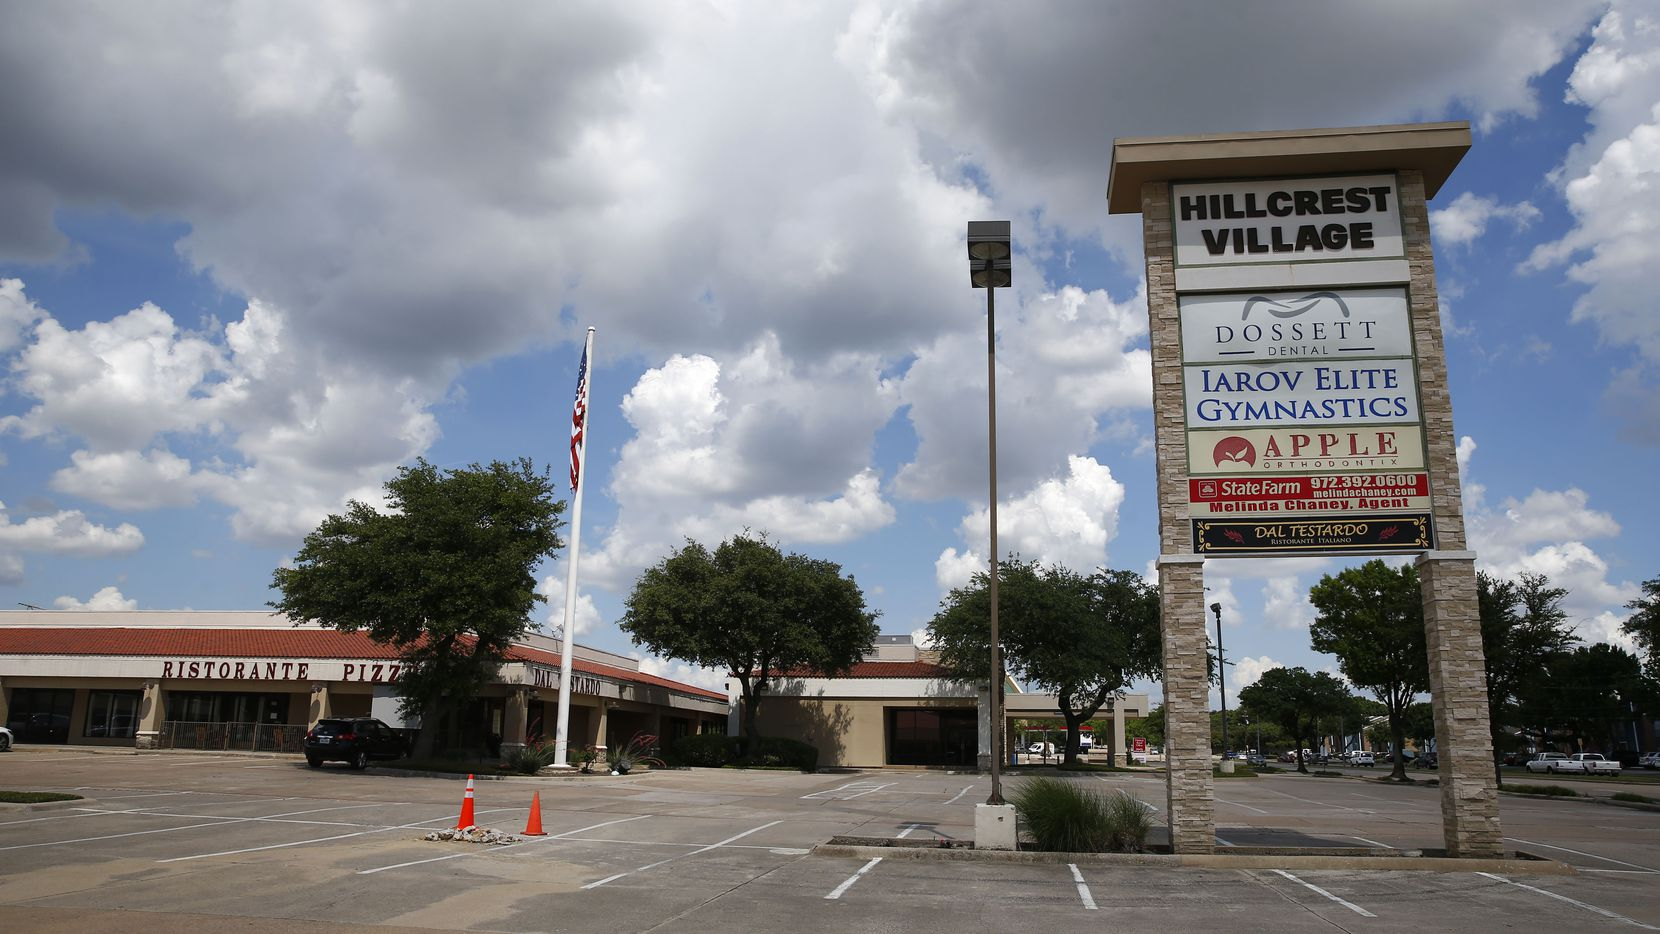 The Hillcrest Village shopping center is at Arapaho and Hillcrest roads in Far North Dallas.